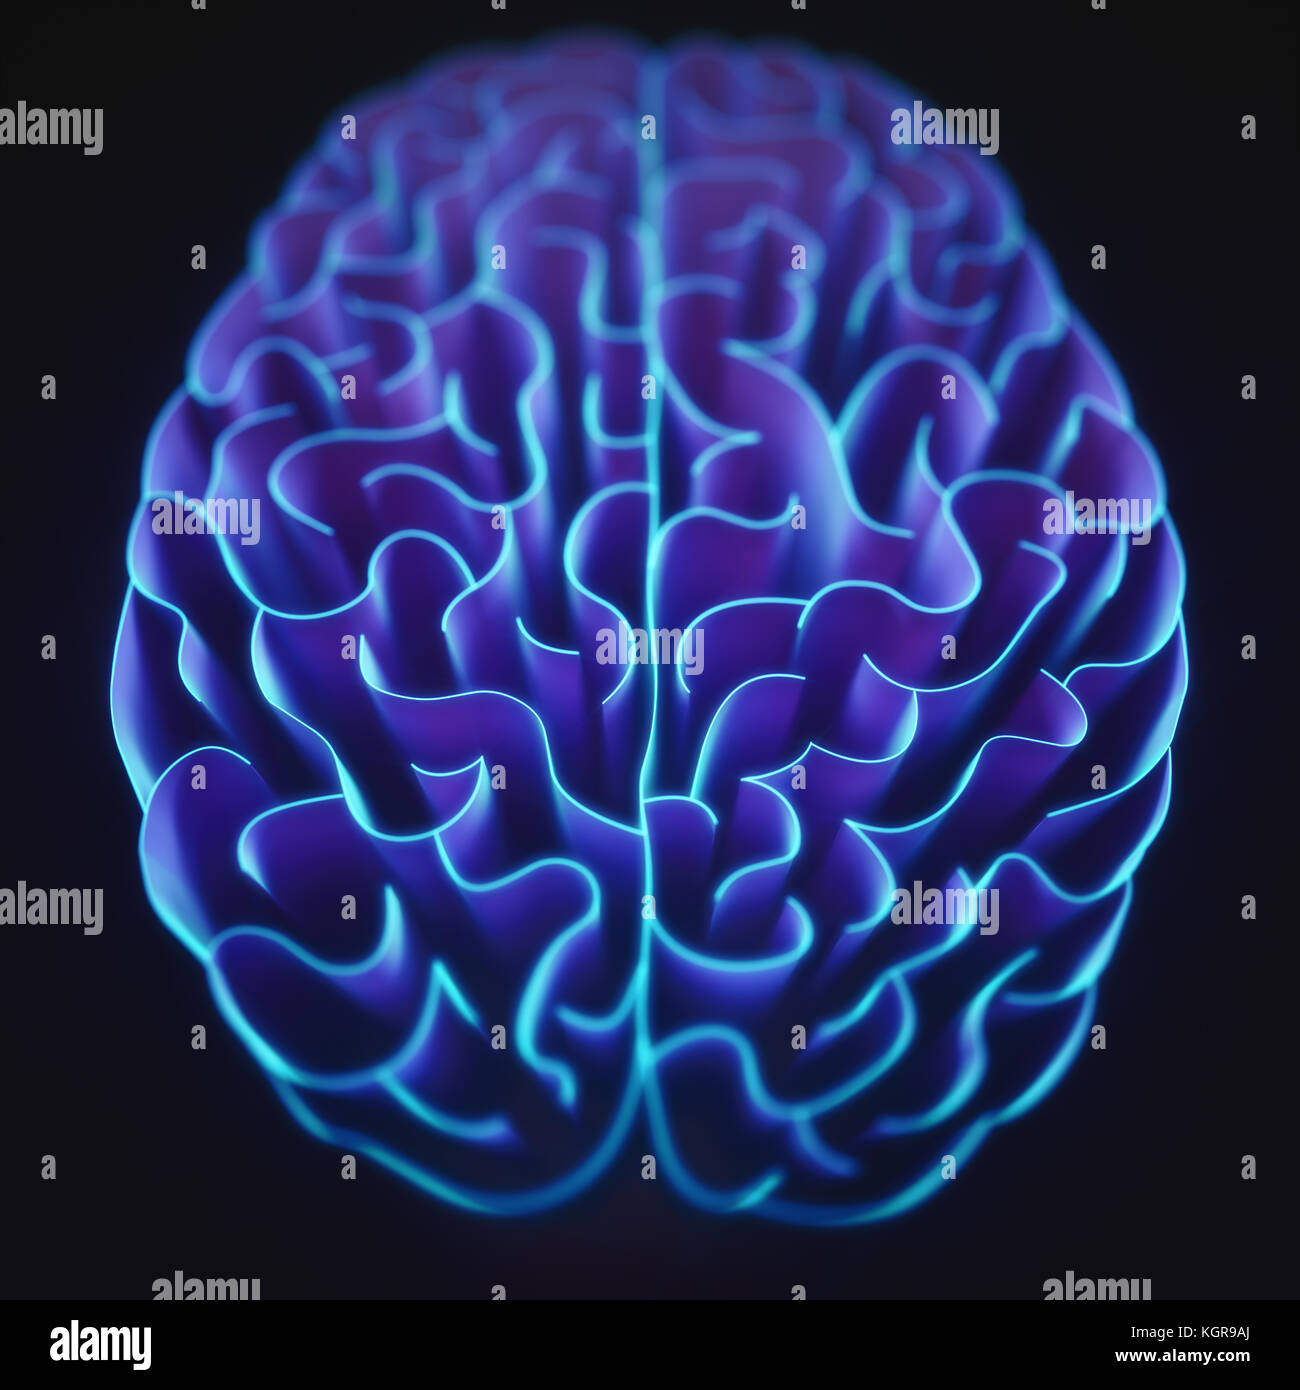 Walls shaped like a brain in a maze with no way out. - Stock Image